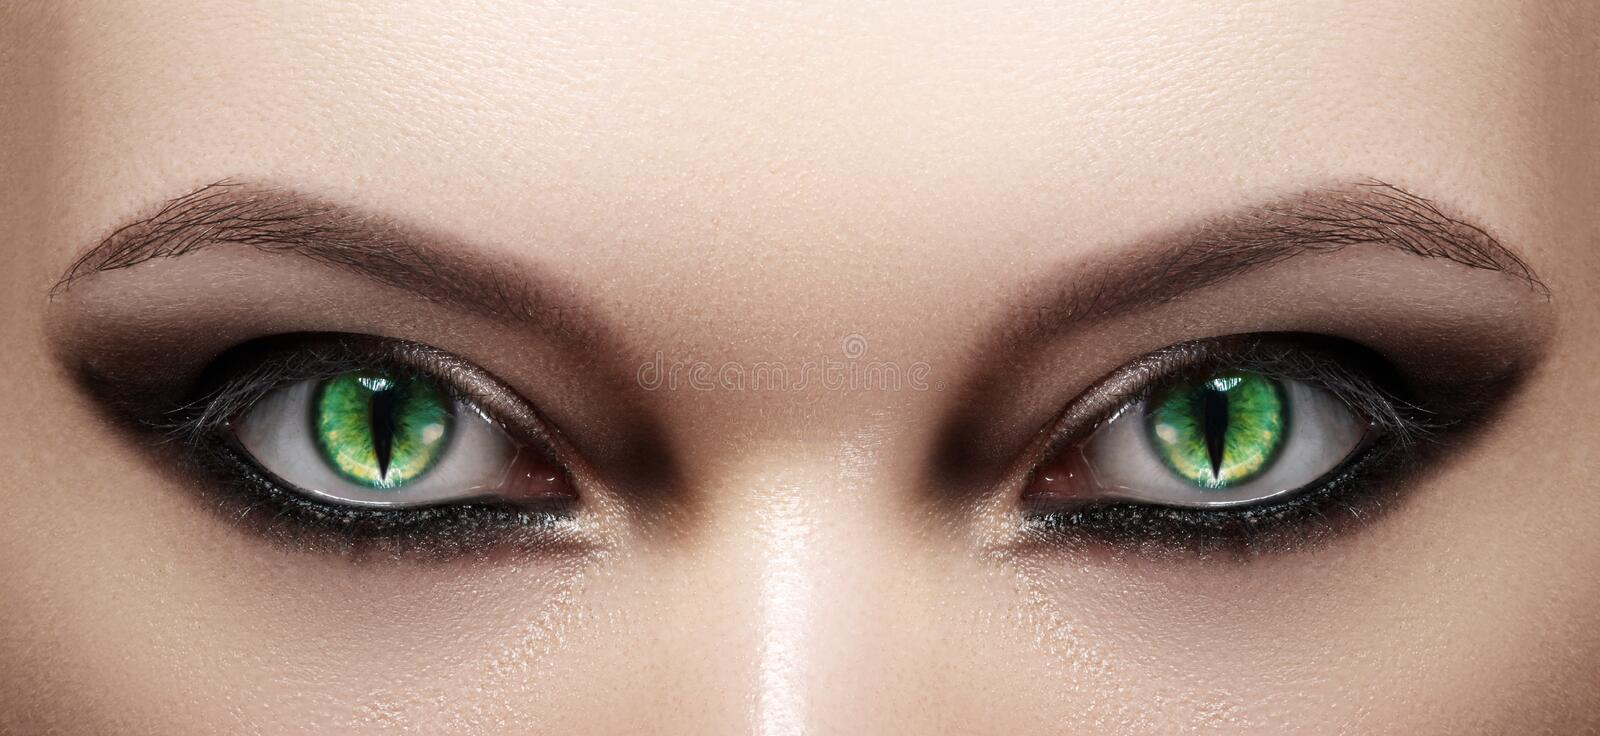 Close-up of Woman Eyes. Halloween Makeup. Cat Eye Lens. Fashion Catwalk Black Make-Up. Luminous Green Cats Eyes royalty free stock photography